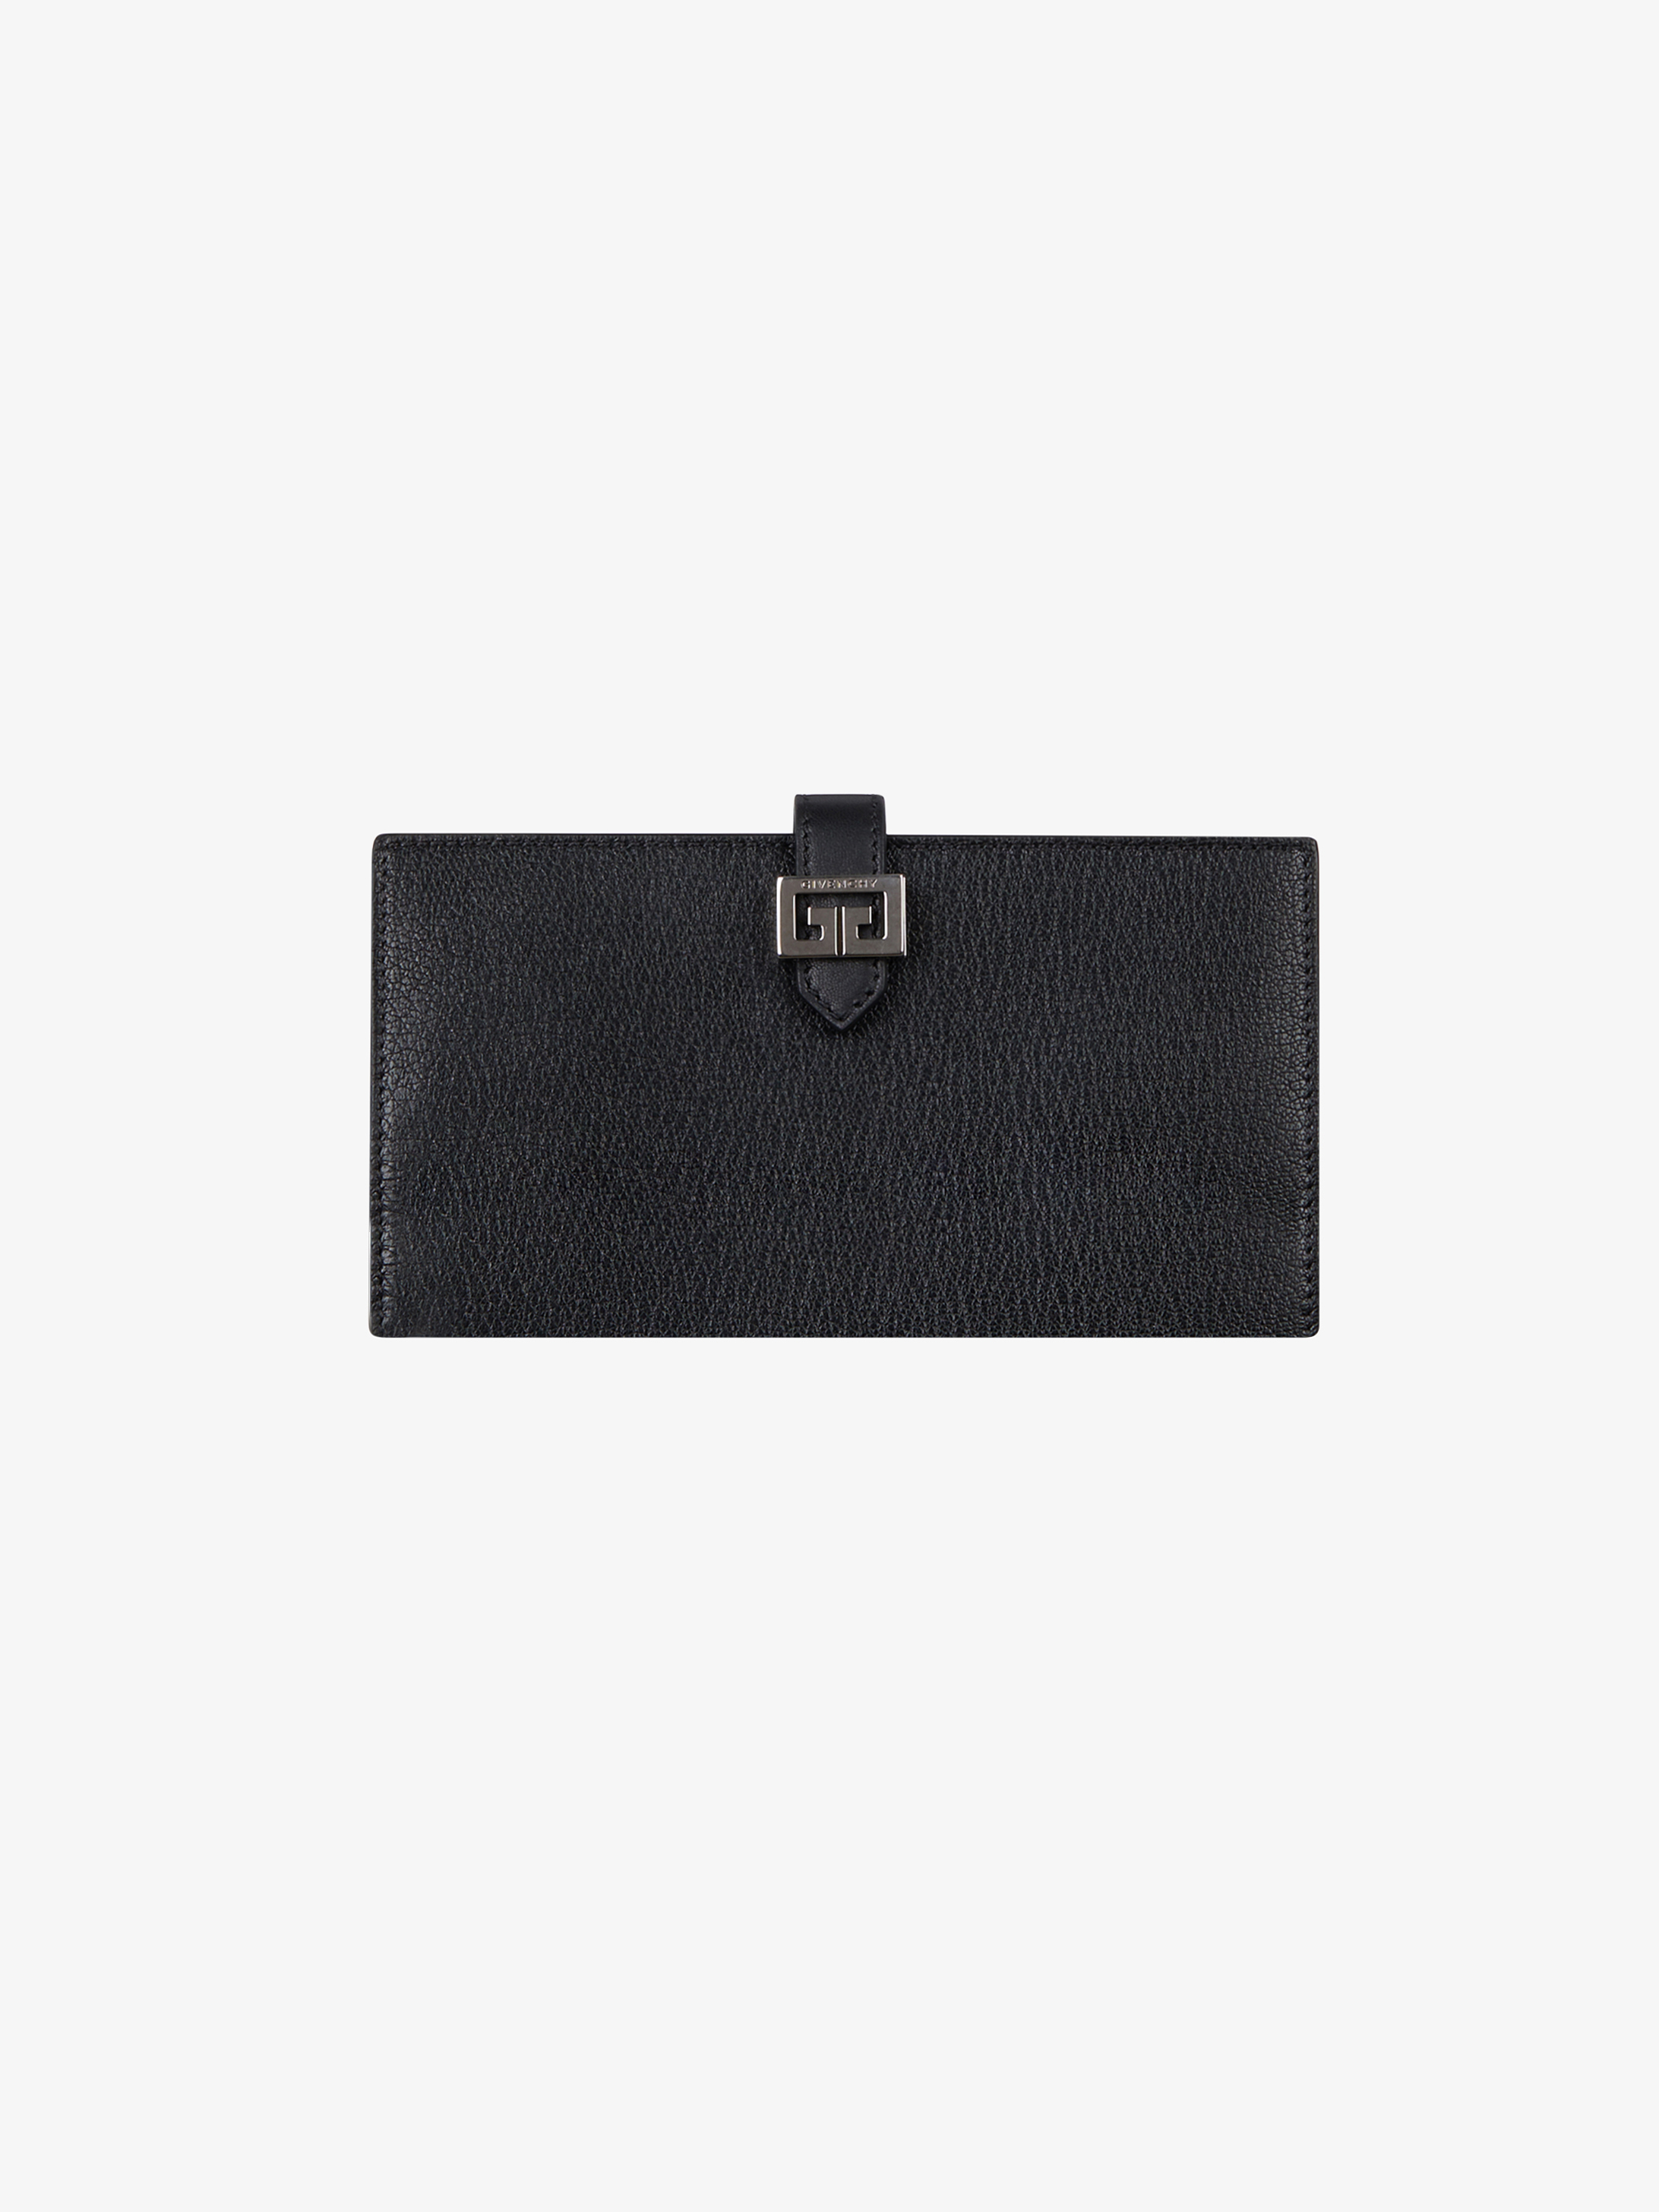 GV3 long wallet in leather